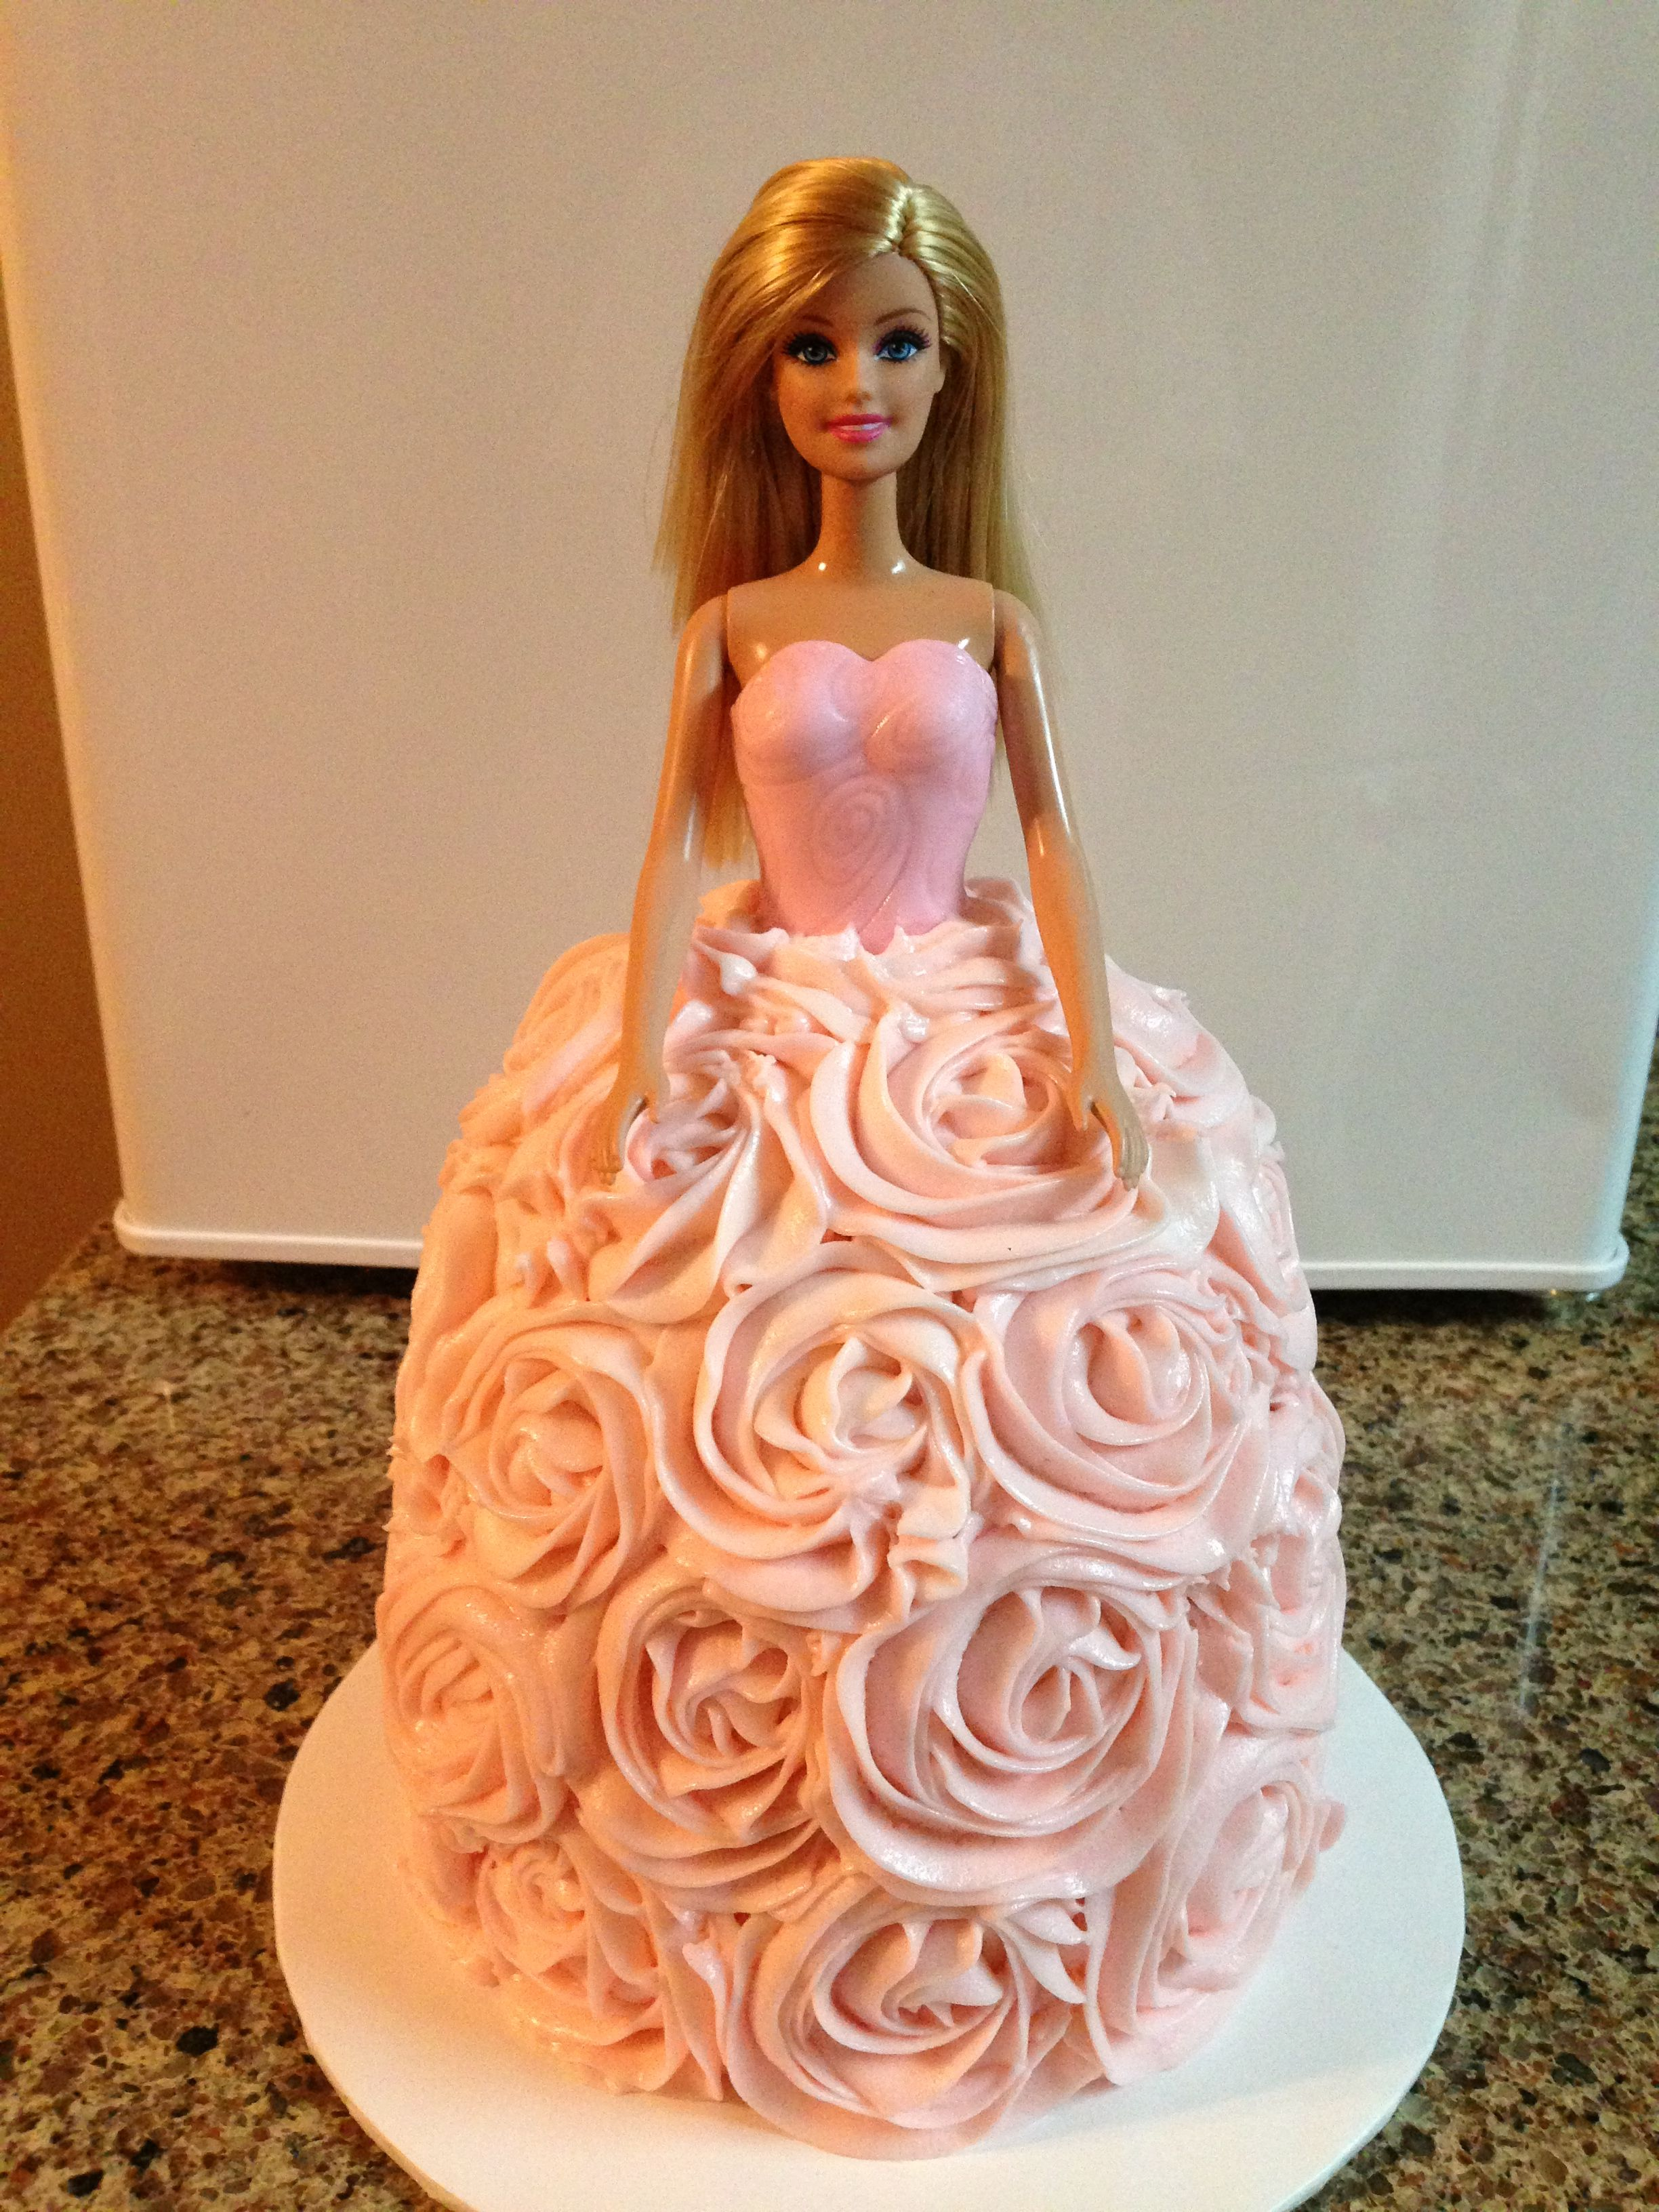 Barbie Cake Made From 2 6 Inch Layers And A Deep Cereal